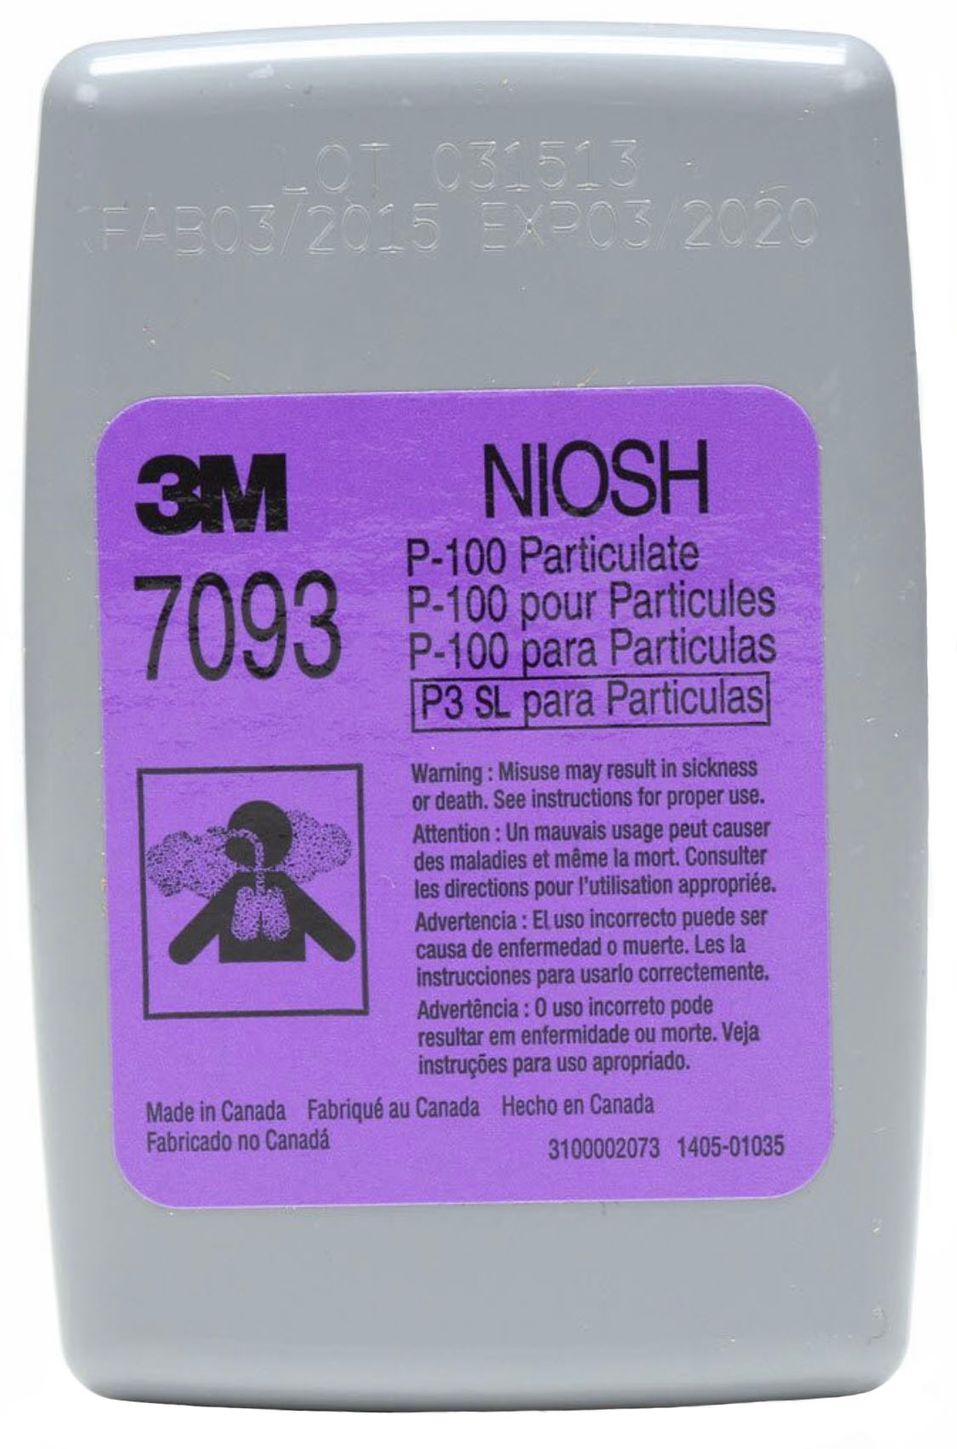 3M 7093 P100 Particulate Filters Front